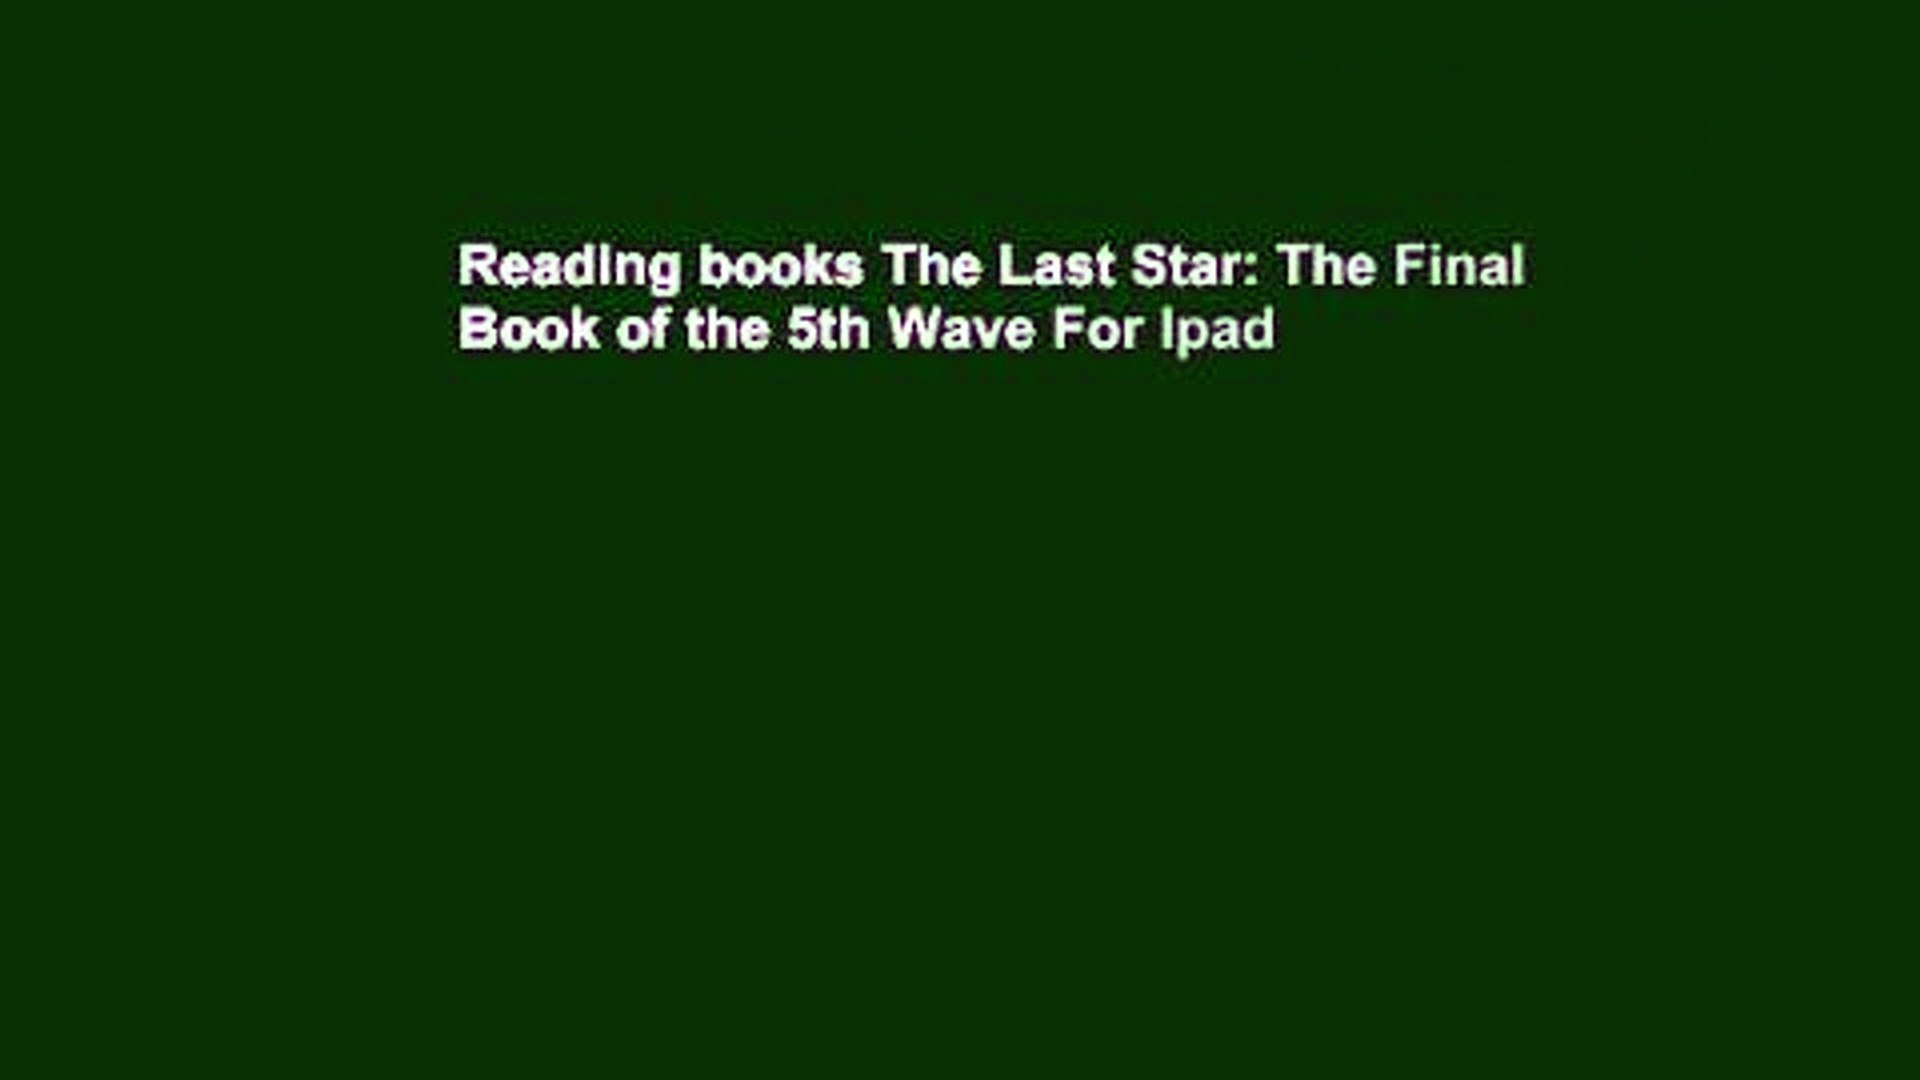 Reading books The Last Star: The Final Book of the 5th Wave For Ipad